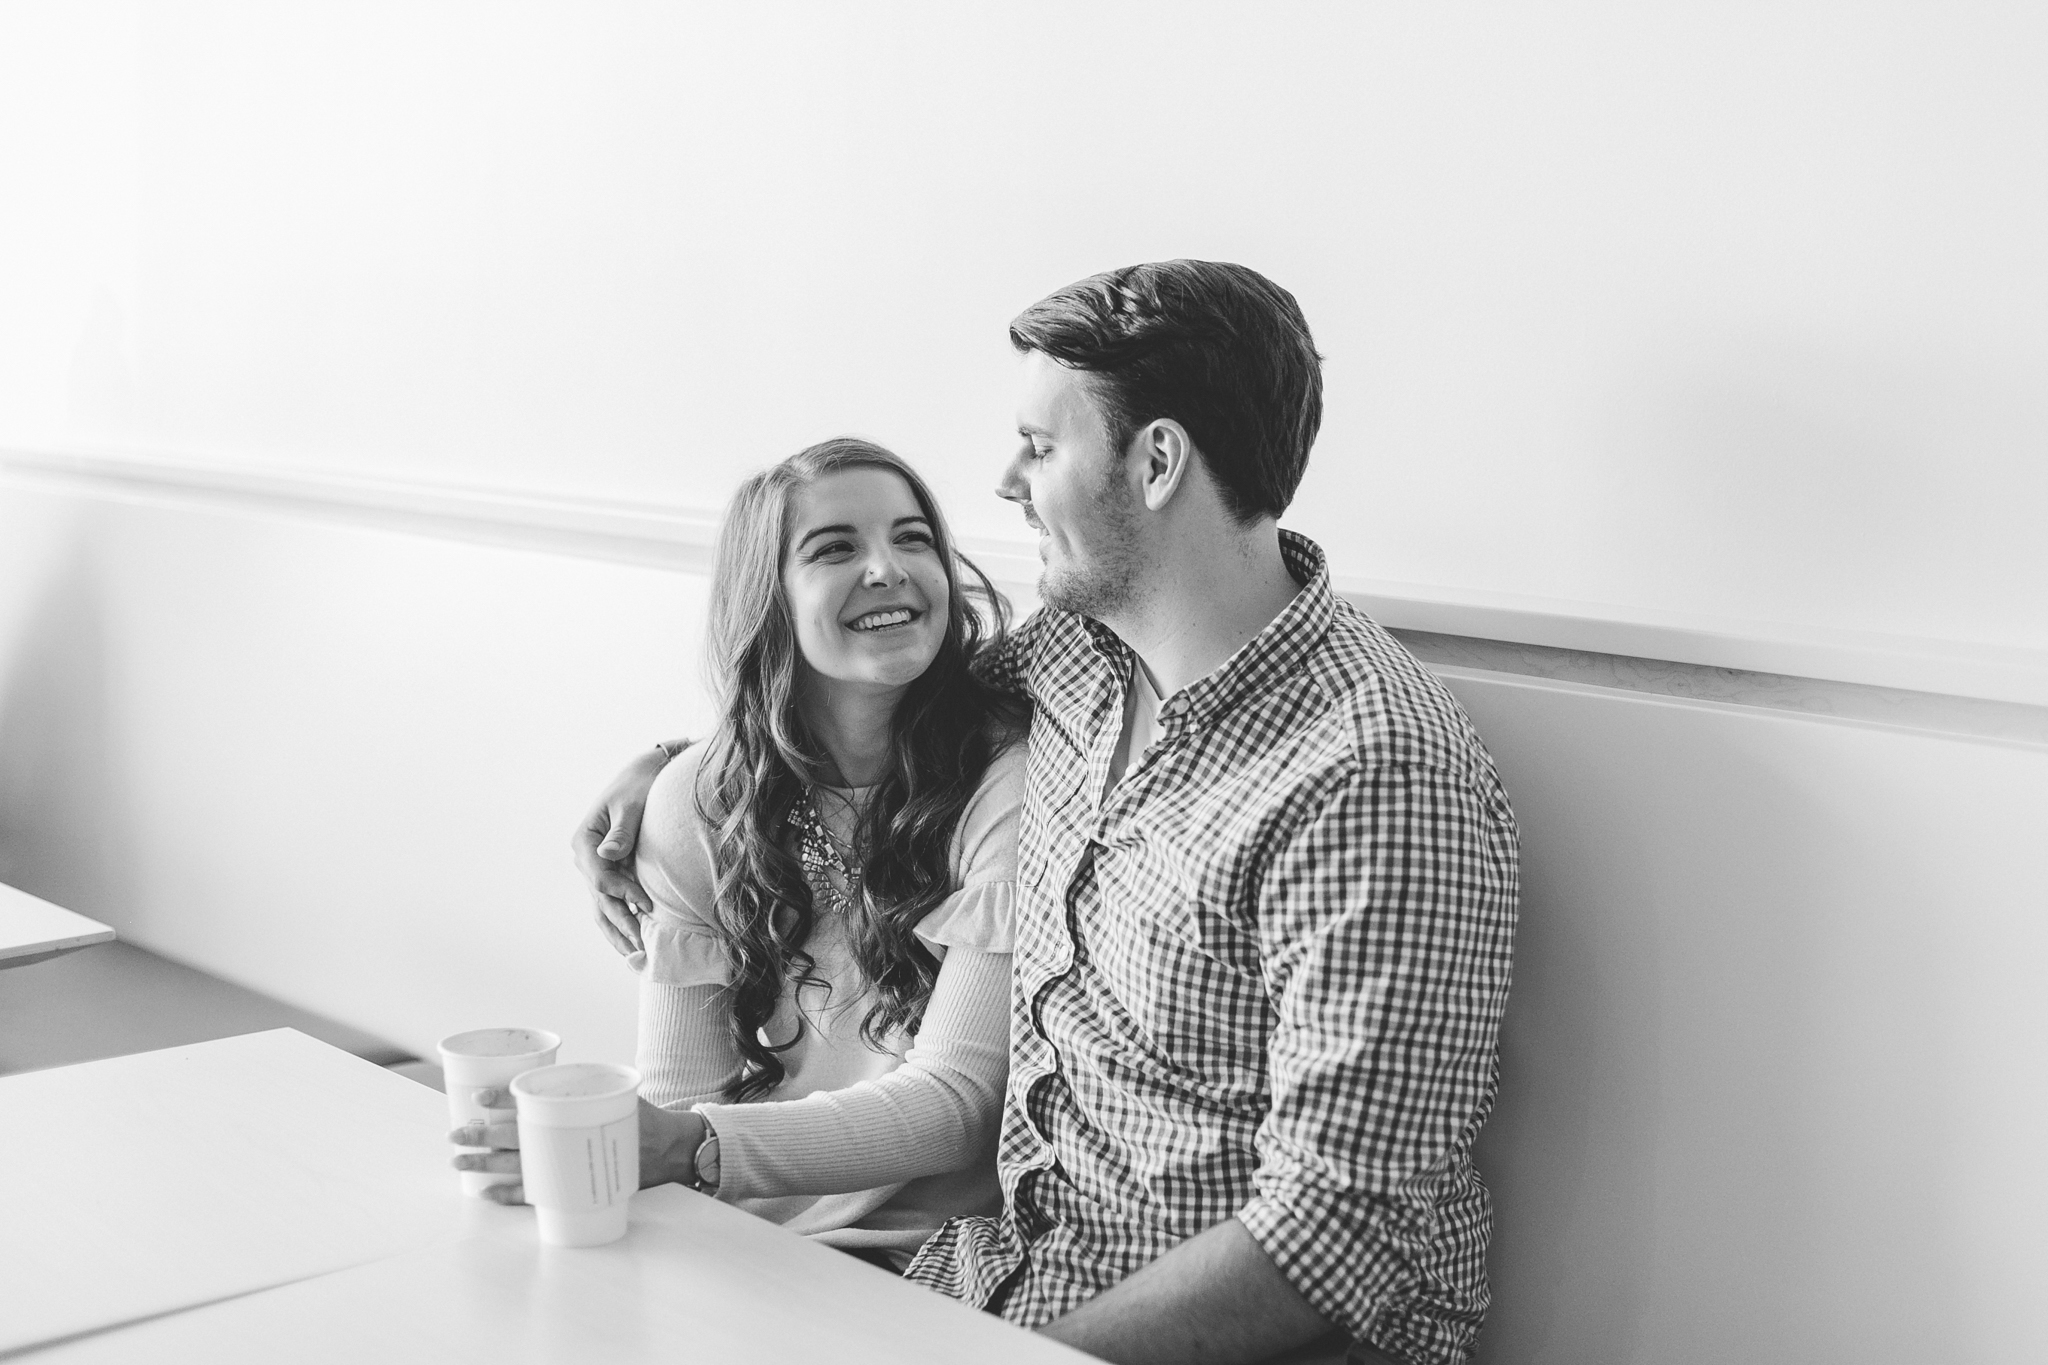 lethbridge-photographer-love-and-be-loved-photography-jonny-bean-coffee-shop-emma-tanner-engagement-picture-image-photo-39.jpg